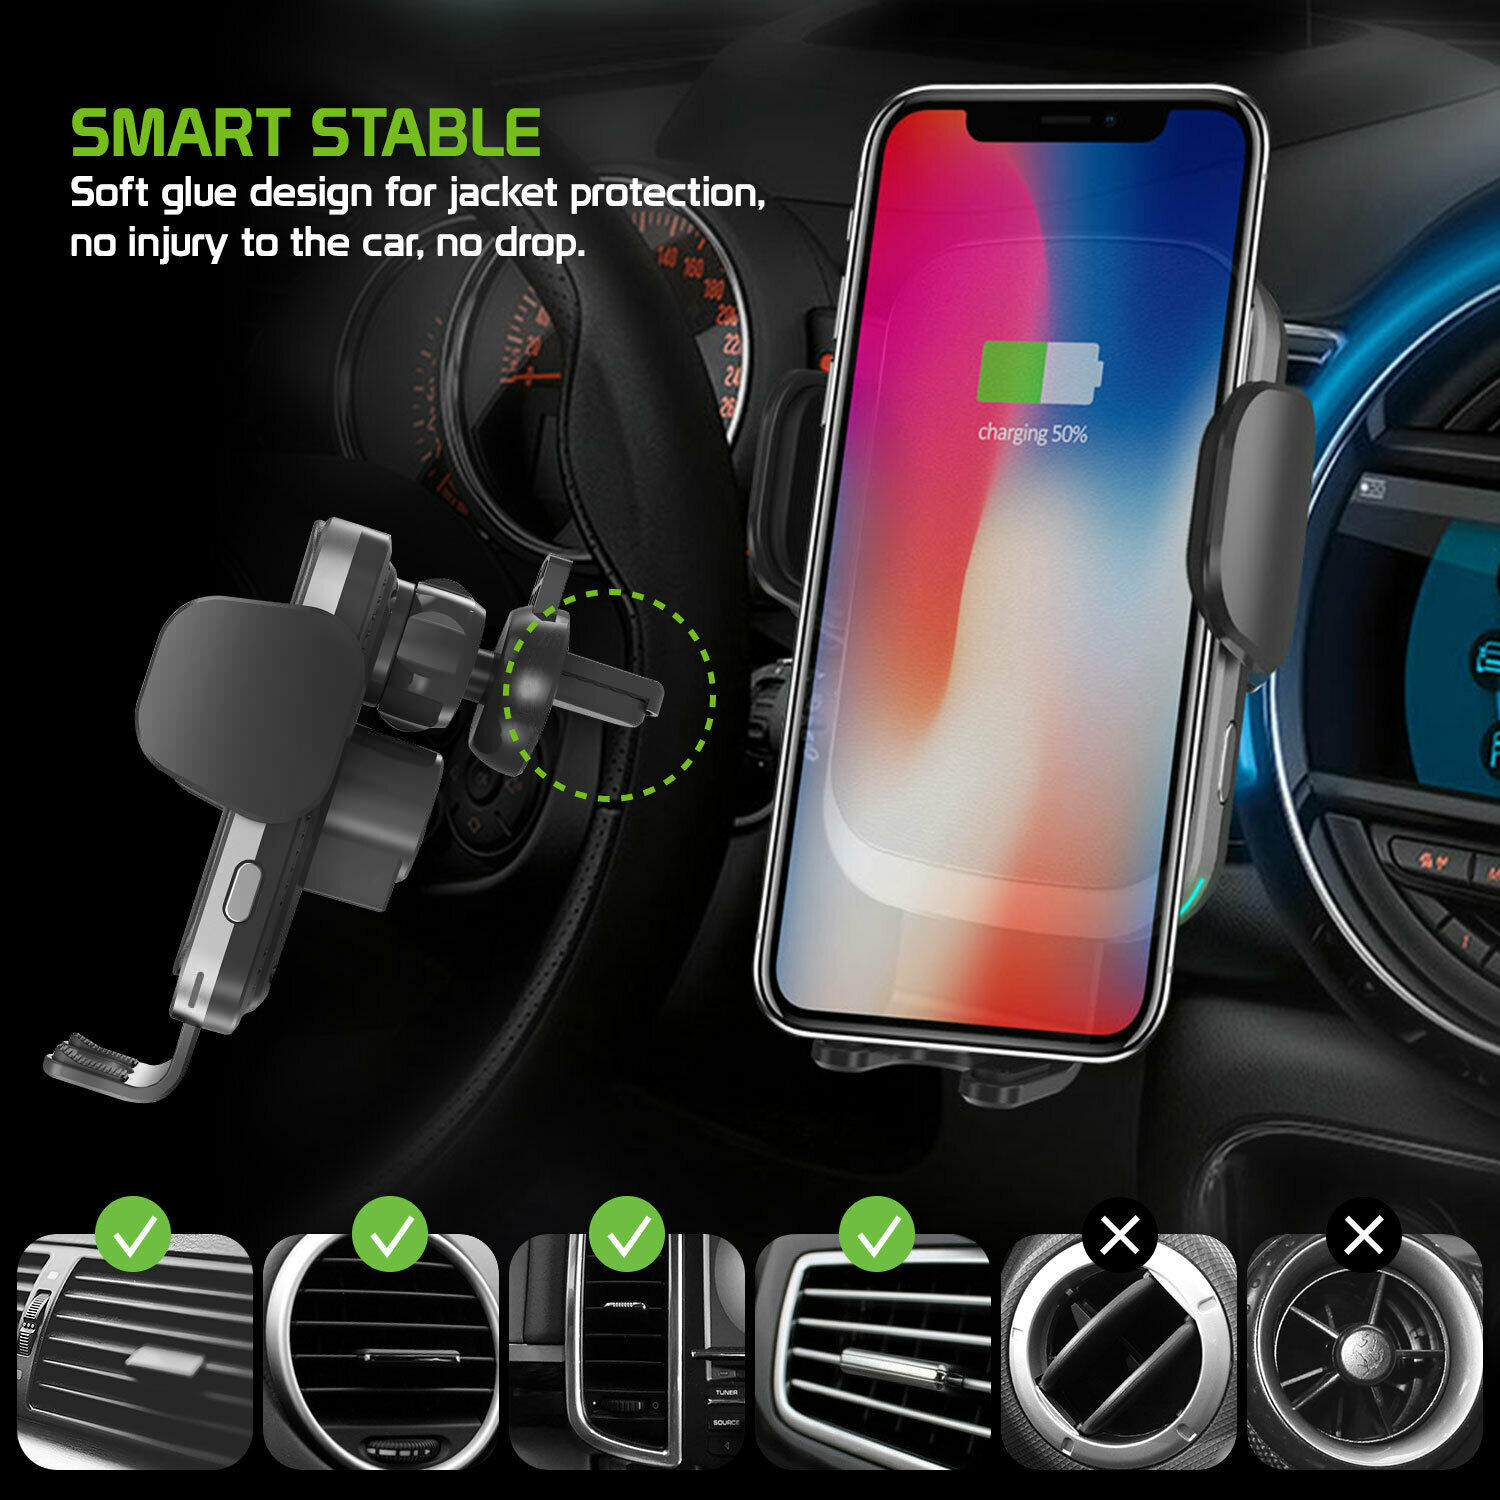 Cellet QI Wireless Fast Charge Phone Mount Dashboard Air Vent for iPhone Note 10 image 3